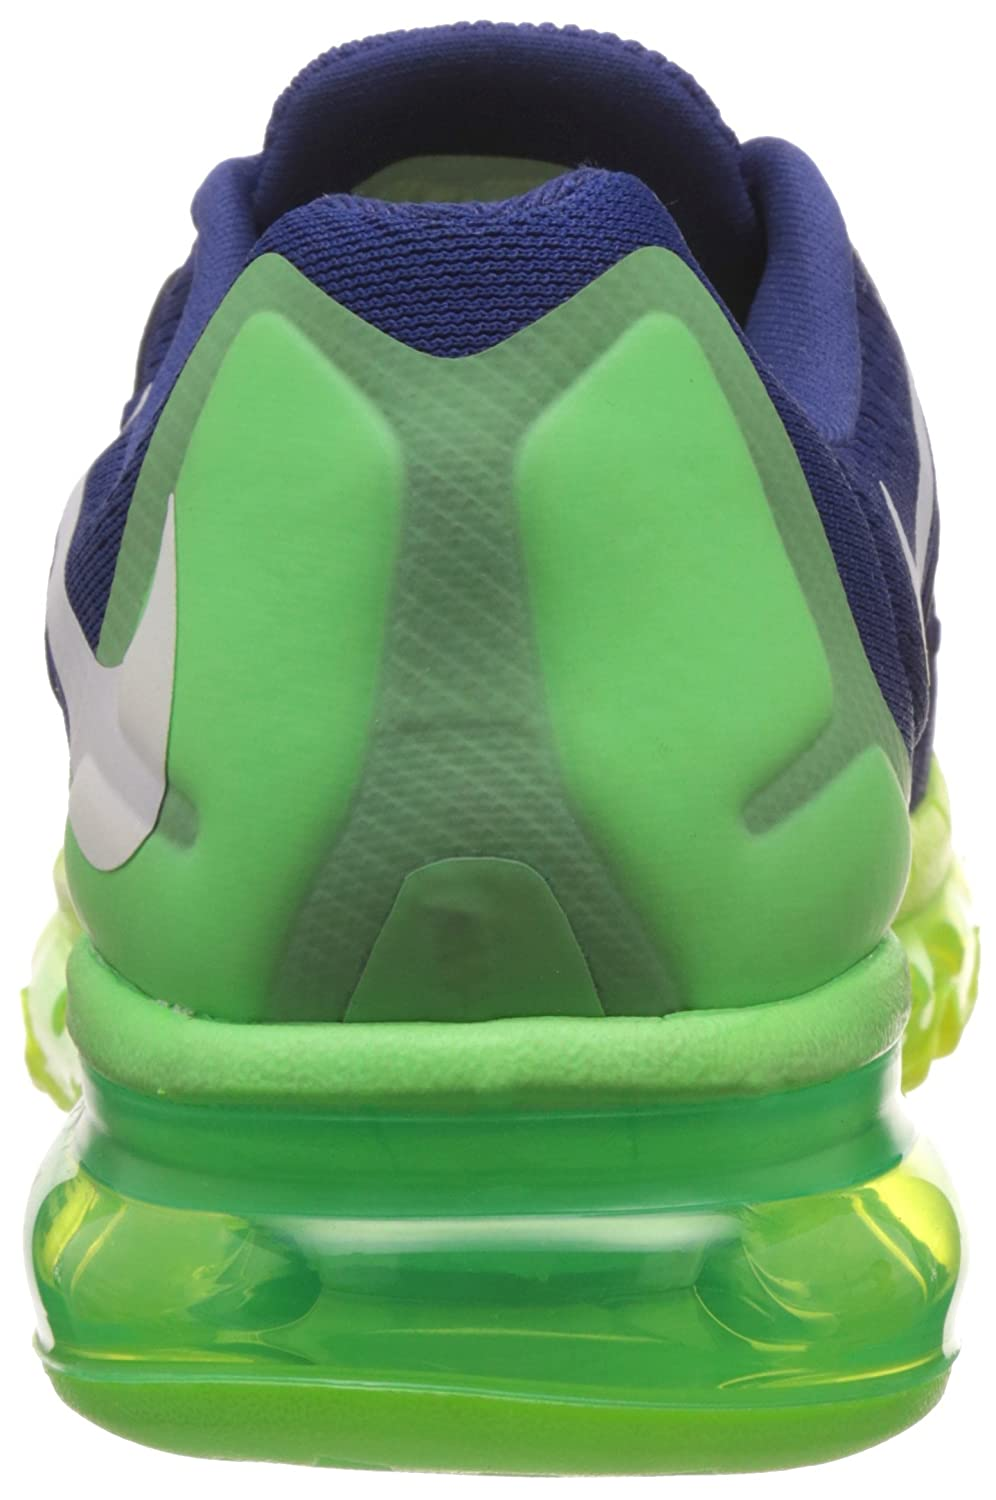 nike men u0027s air max 2015 running shoes buy online at low prices in